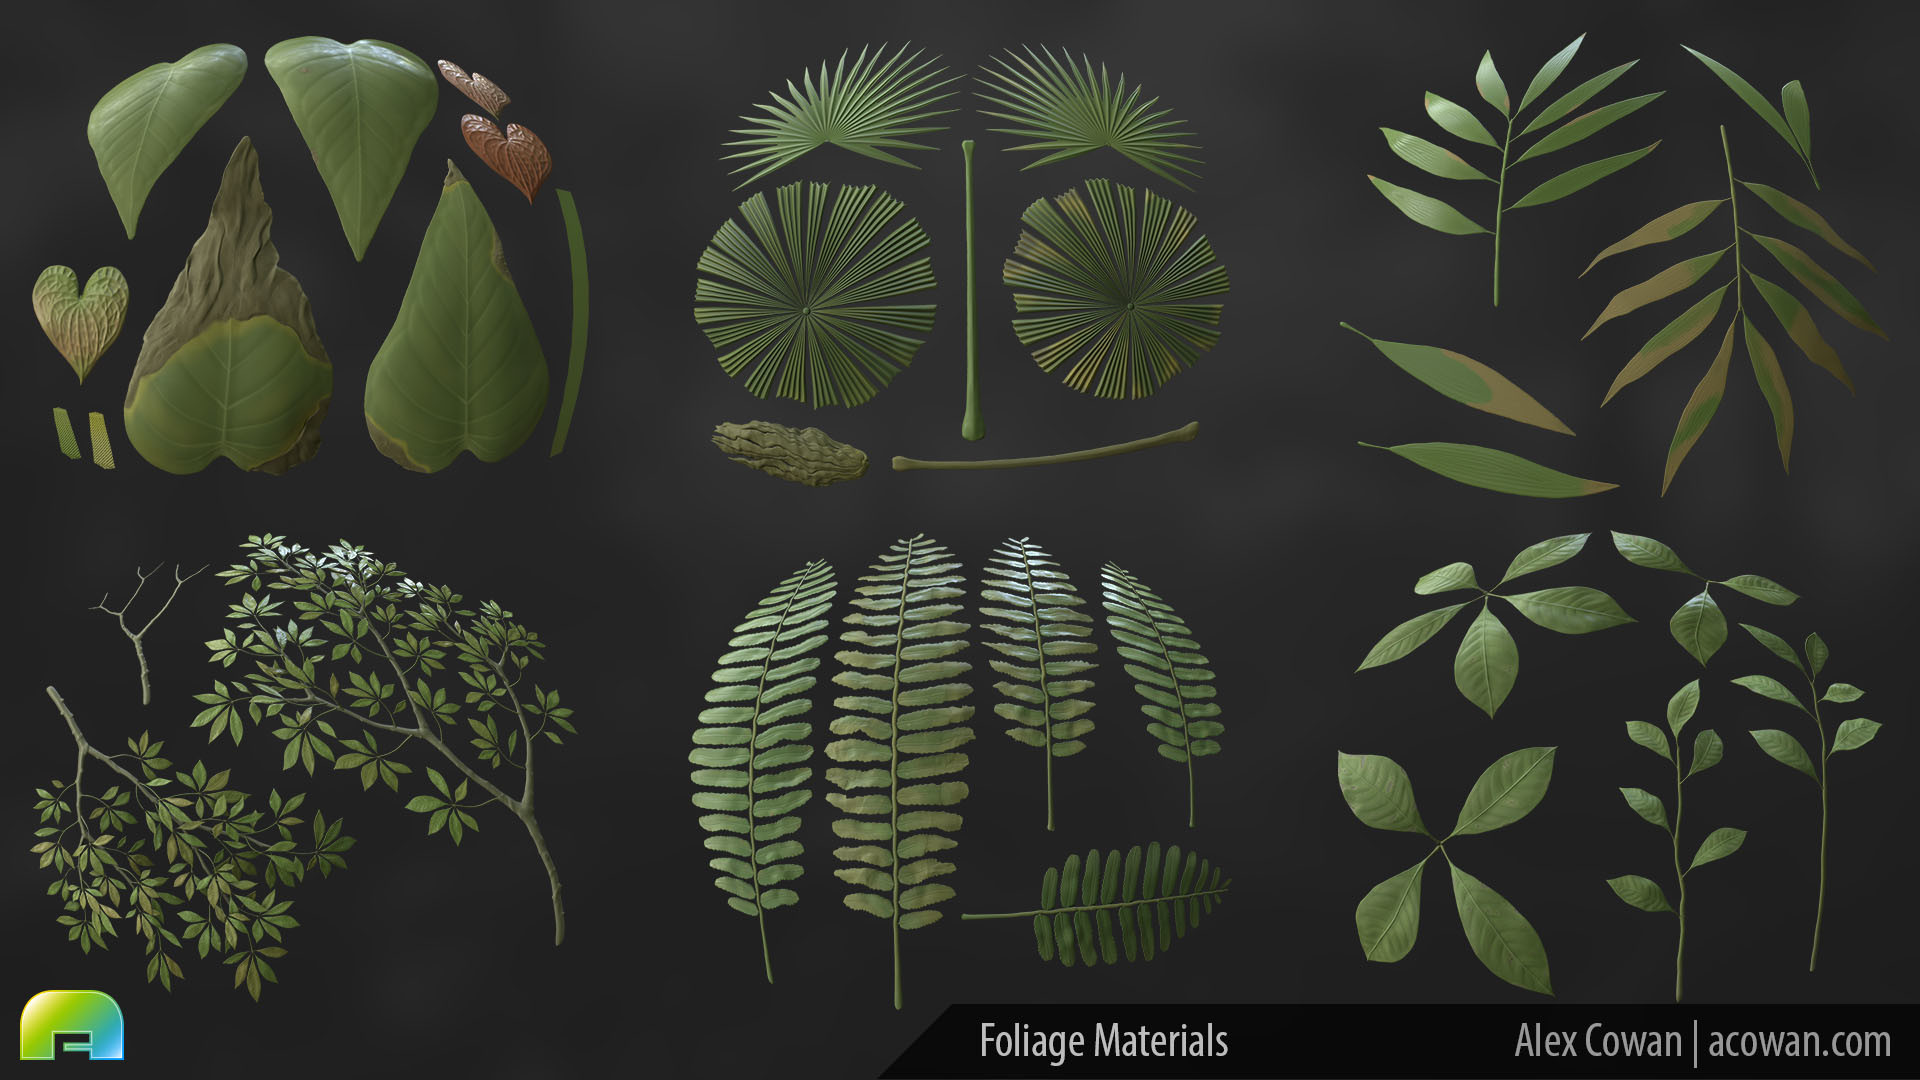 Alexander cowan jungle materials foliage